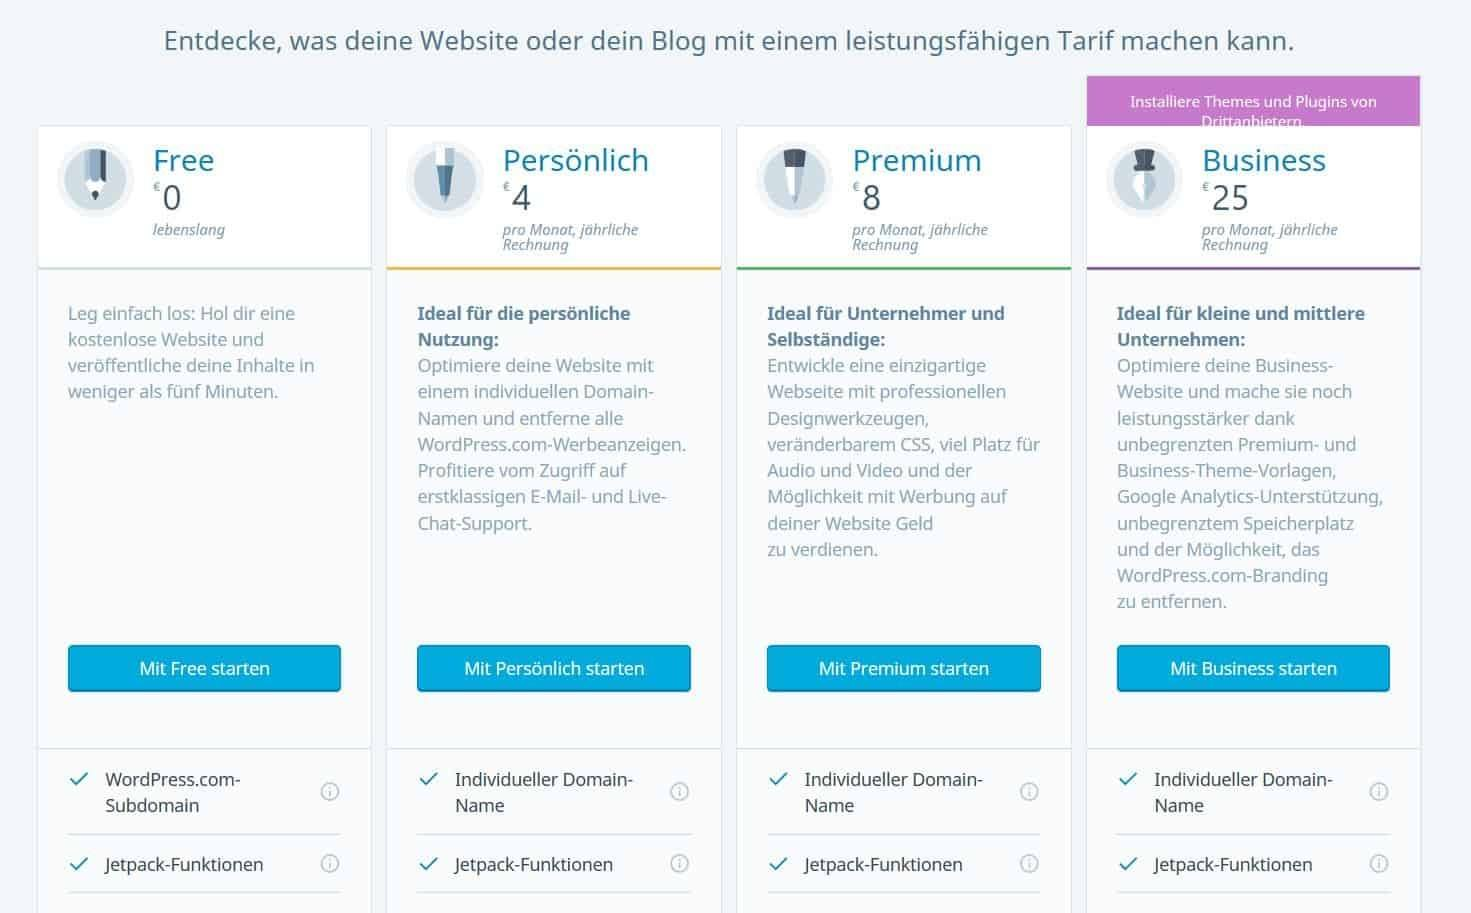 Beste Werbung Web Vorlagen Bilder - Entry Level Resume Vorlagen ...